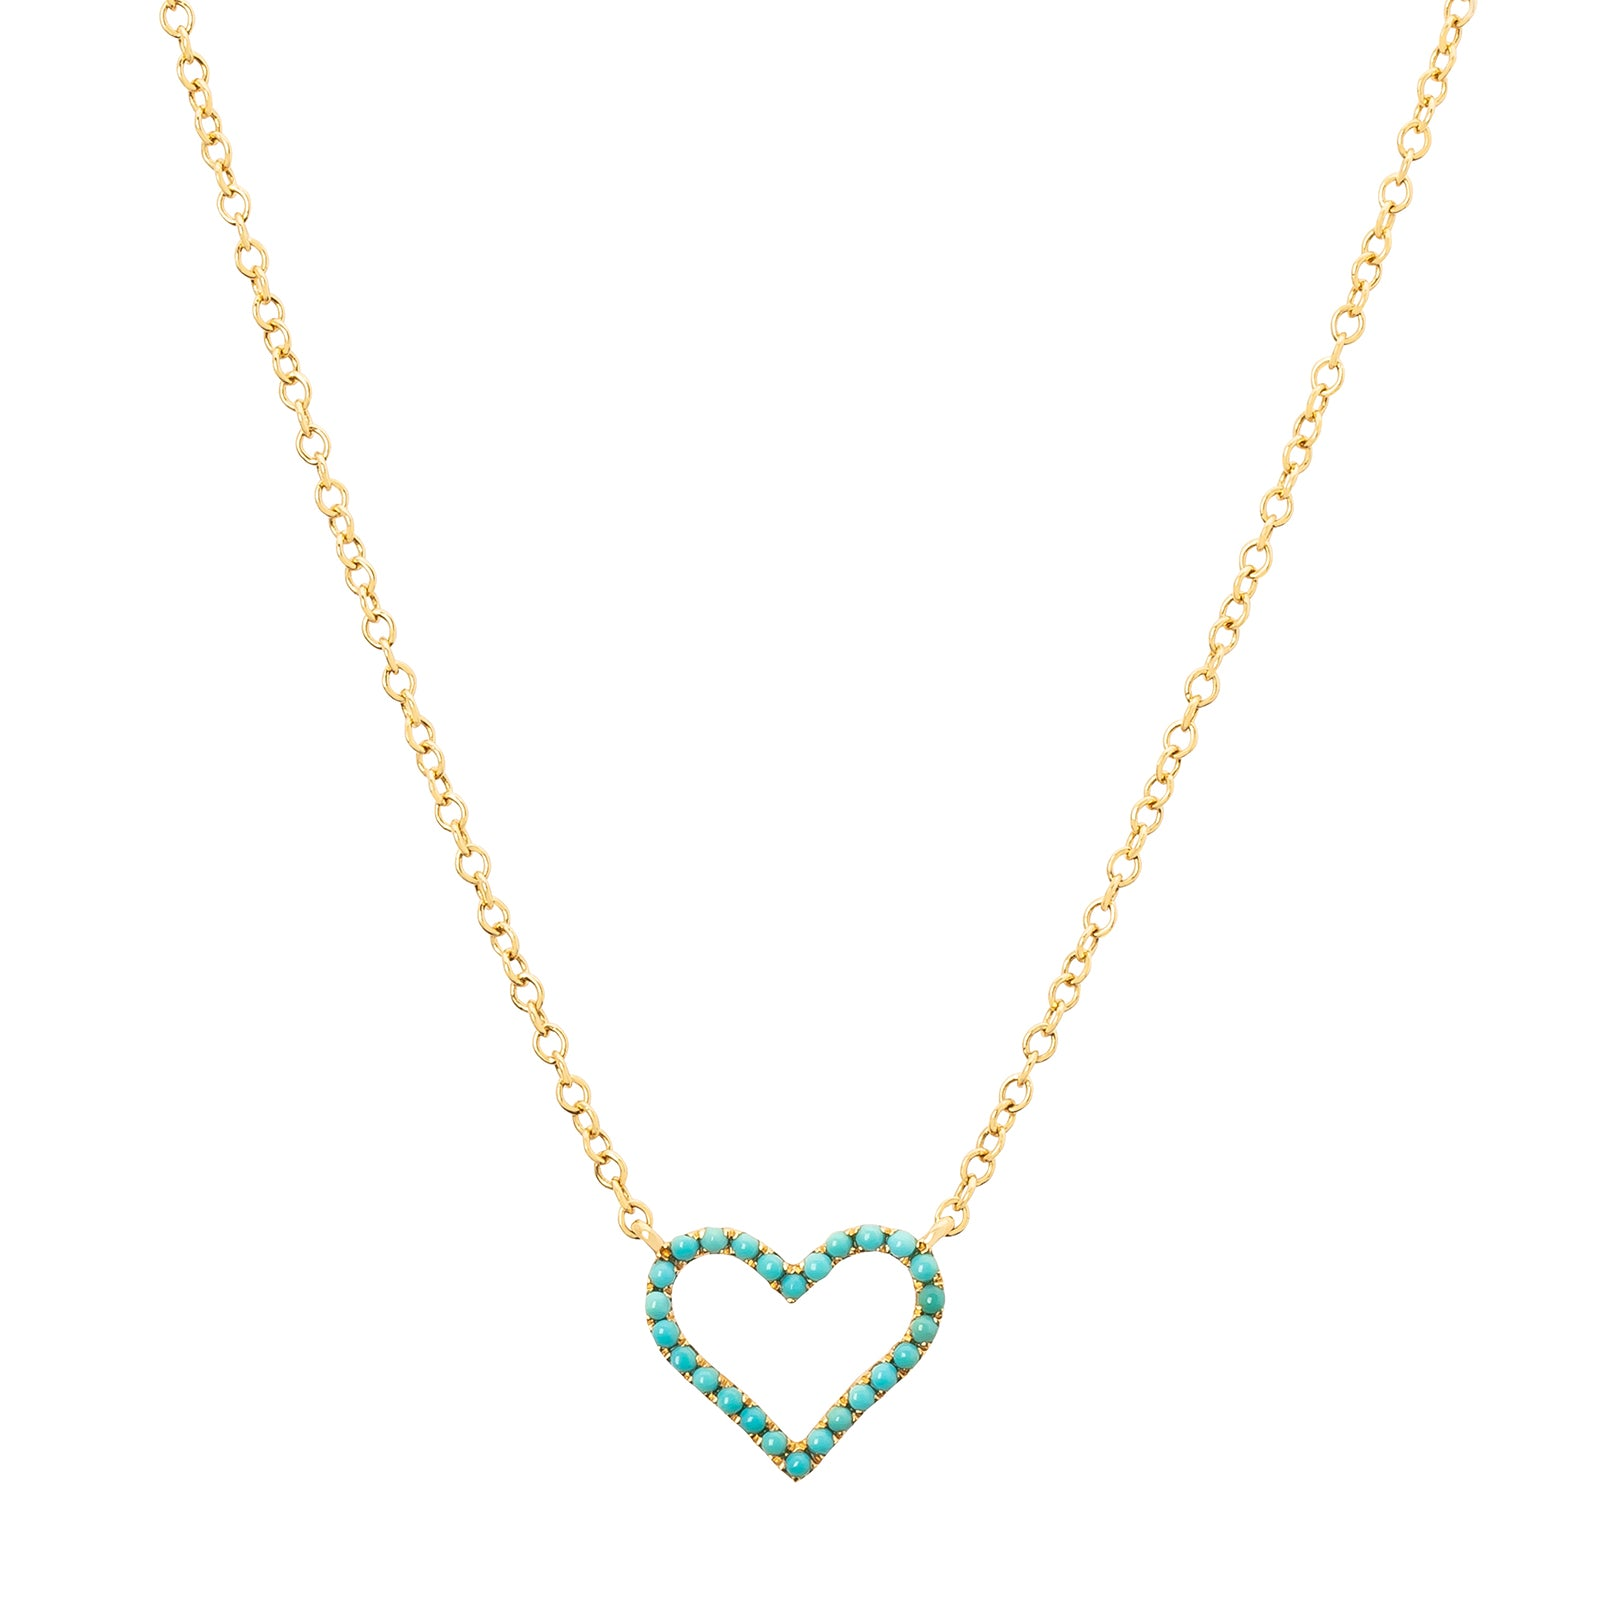 Rosa de la Cruz Heart Charm Necklace - Turquoise - Necklaces - Broken English Jewelry